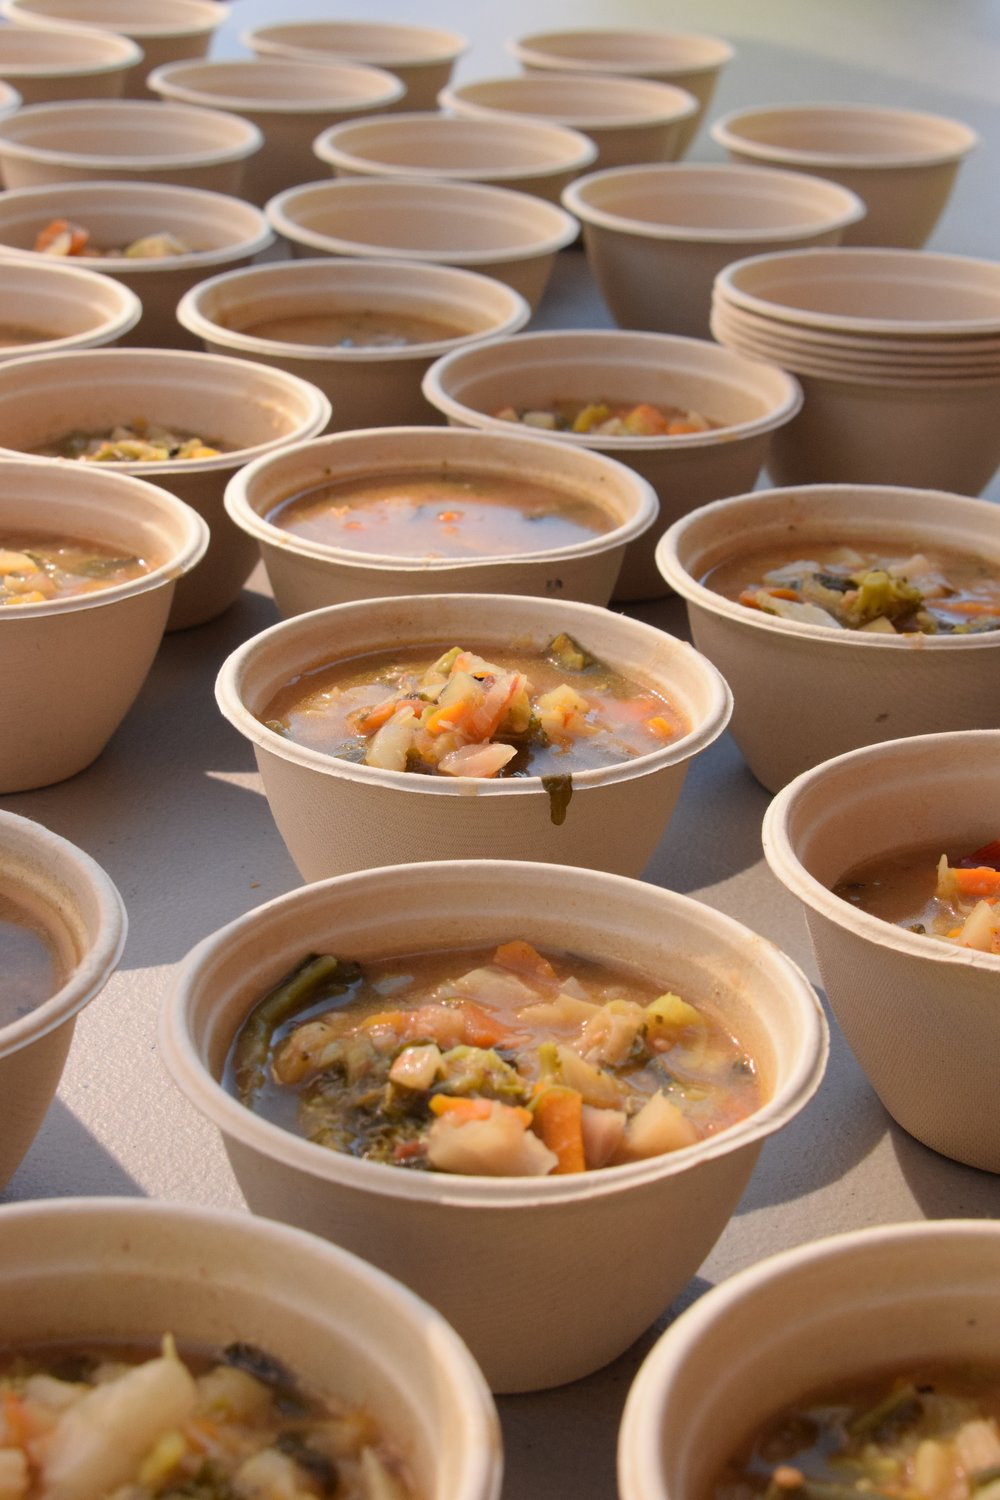 The Harvest Vegetable Stew on the day at Monument Square